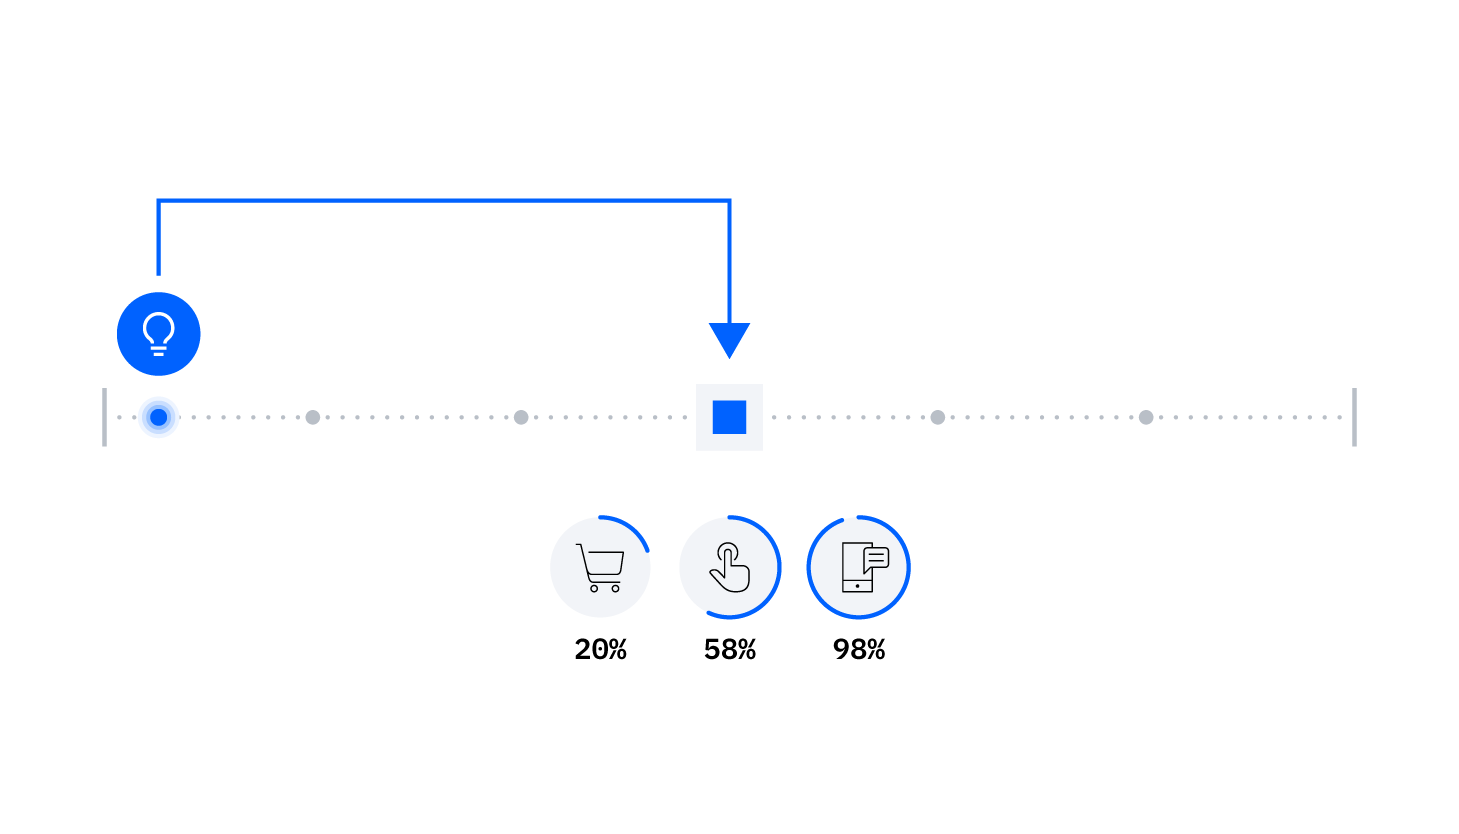 Diagram representing the prediction of certain events to better serve customers via IBM Event Streams